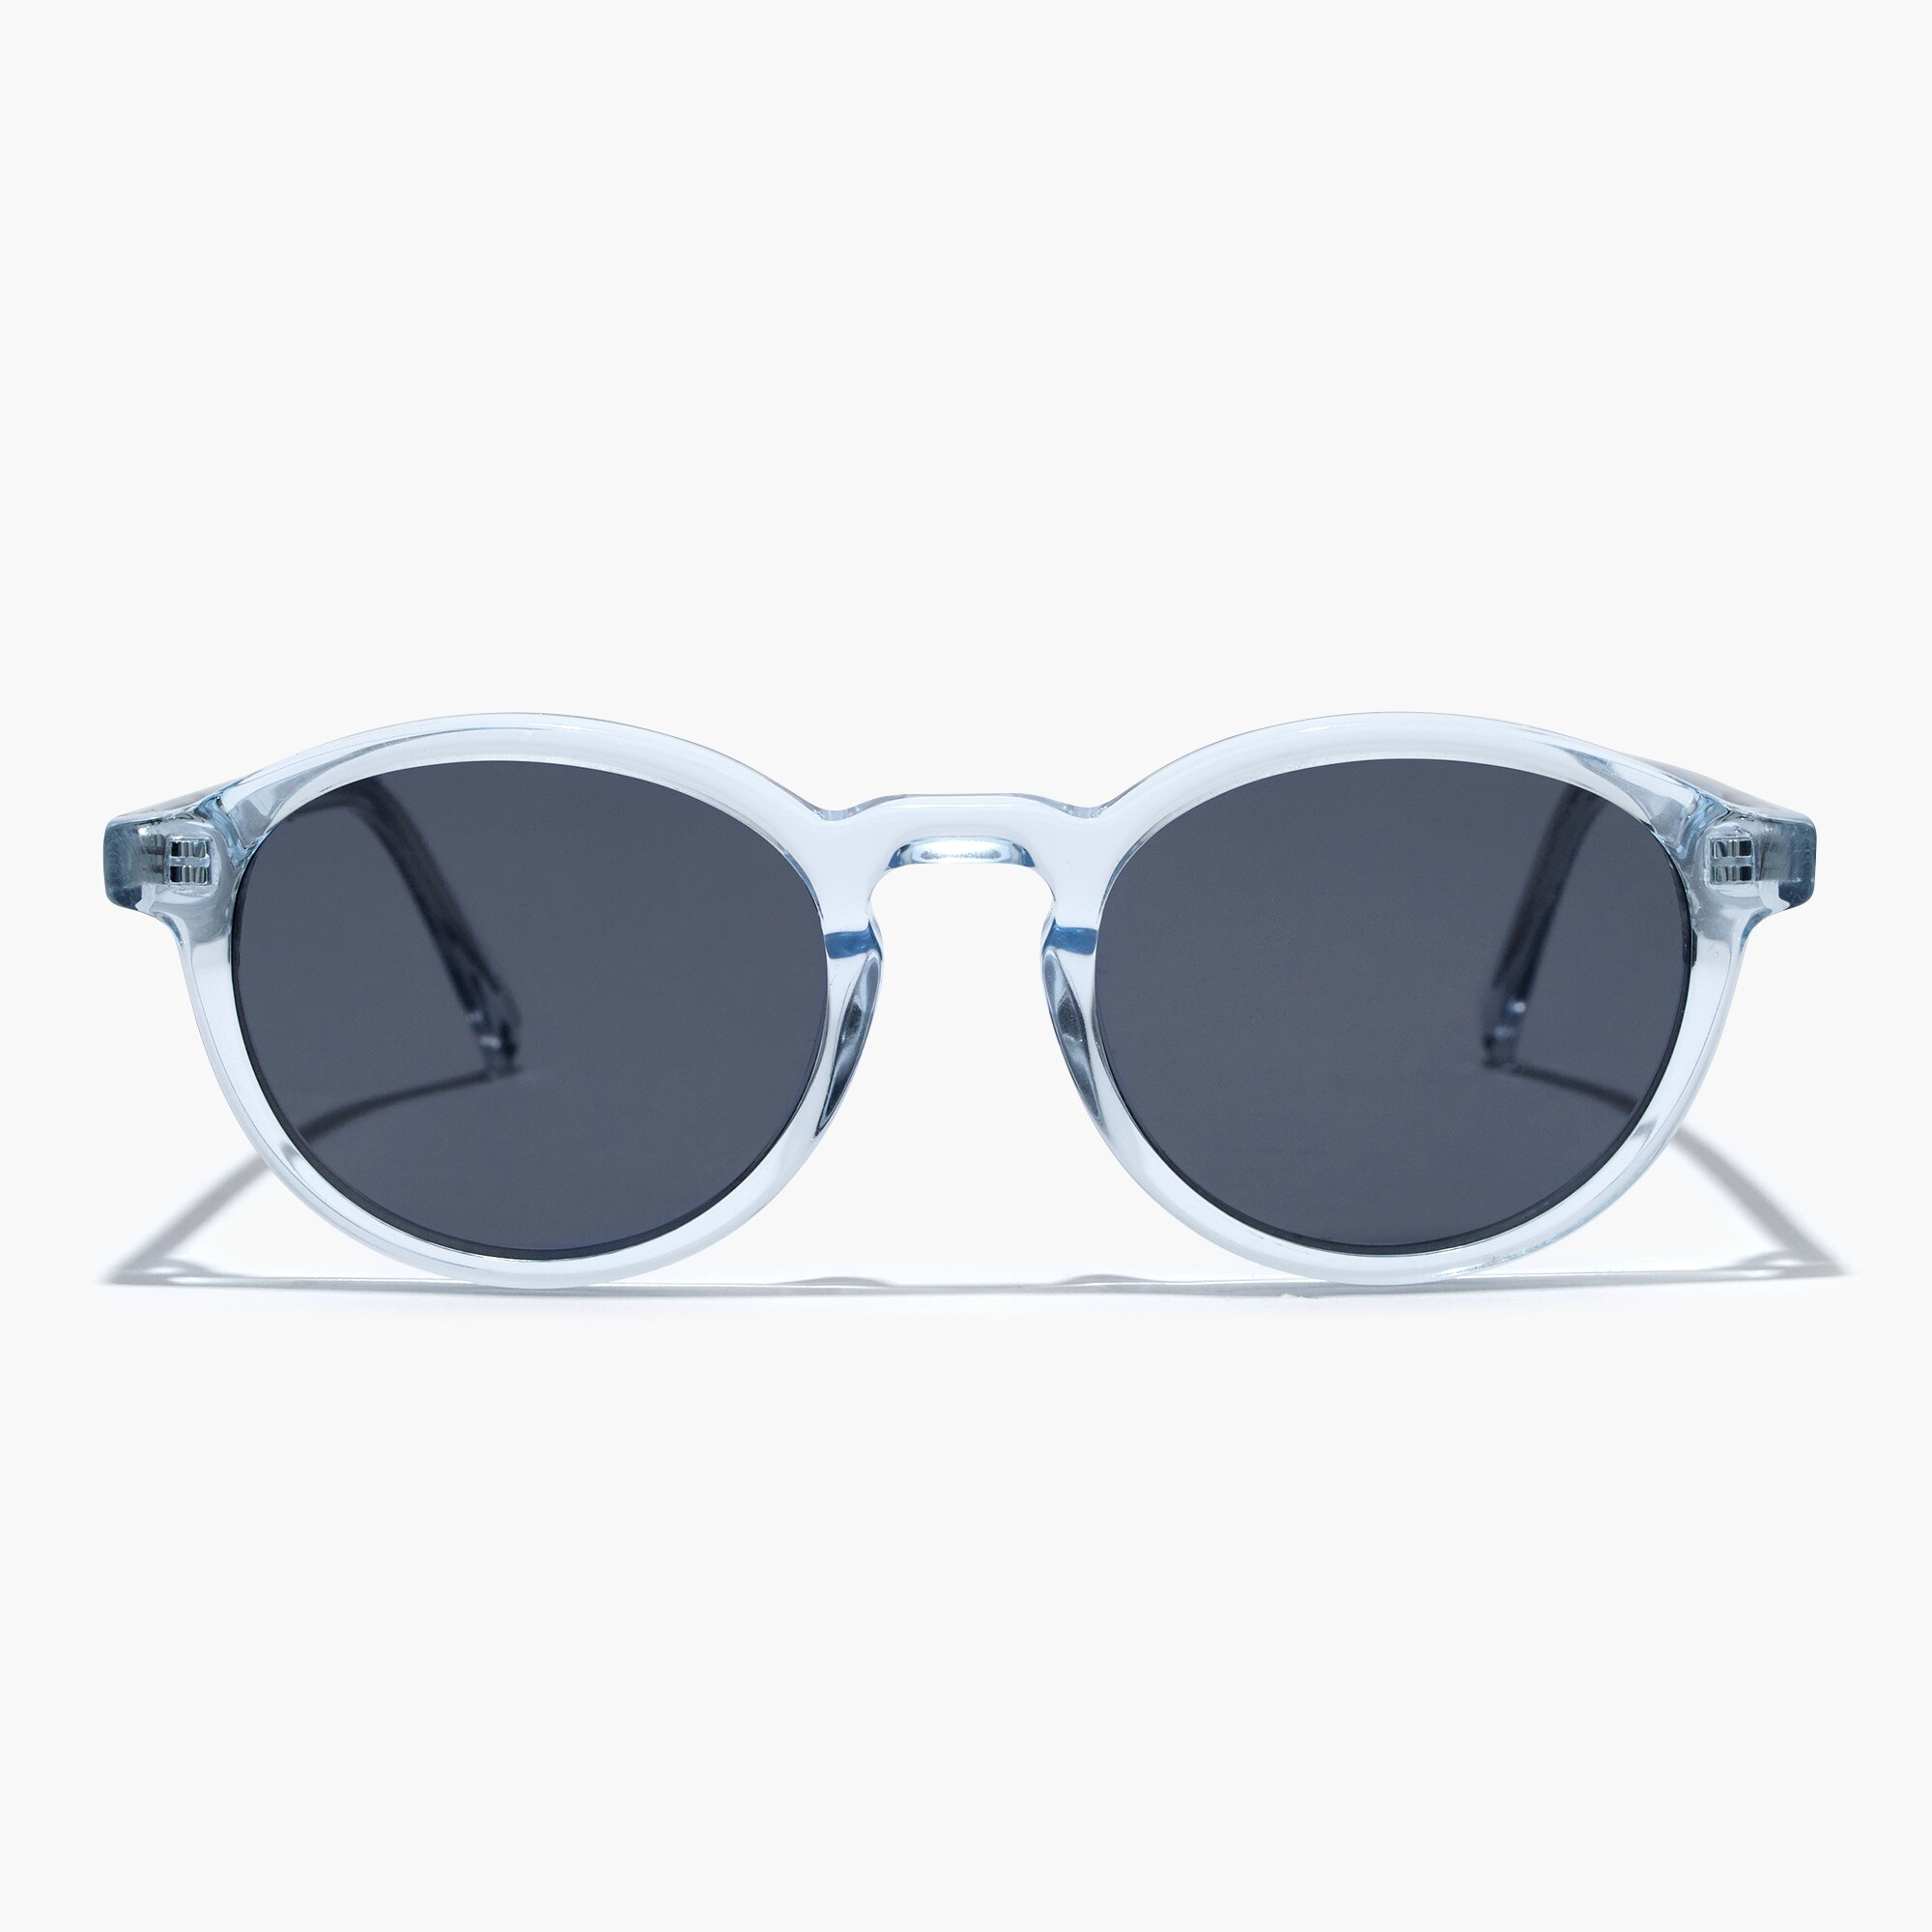 mens Low tide sunglasses